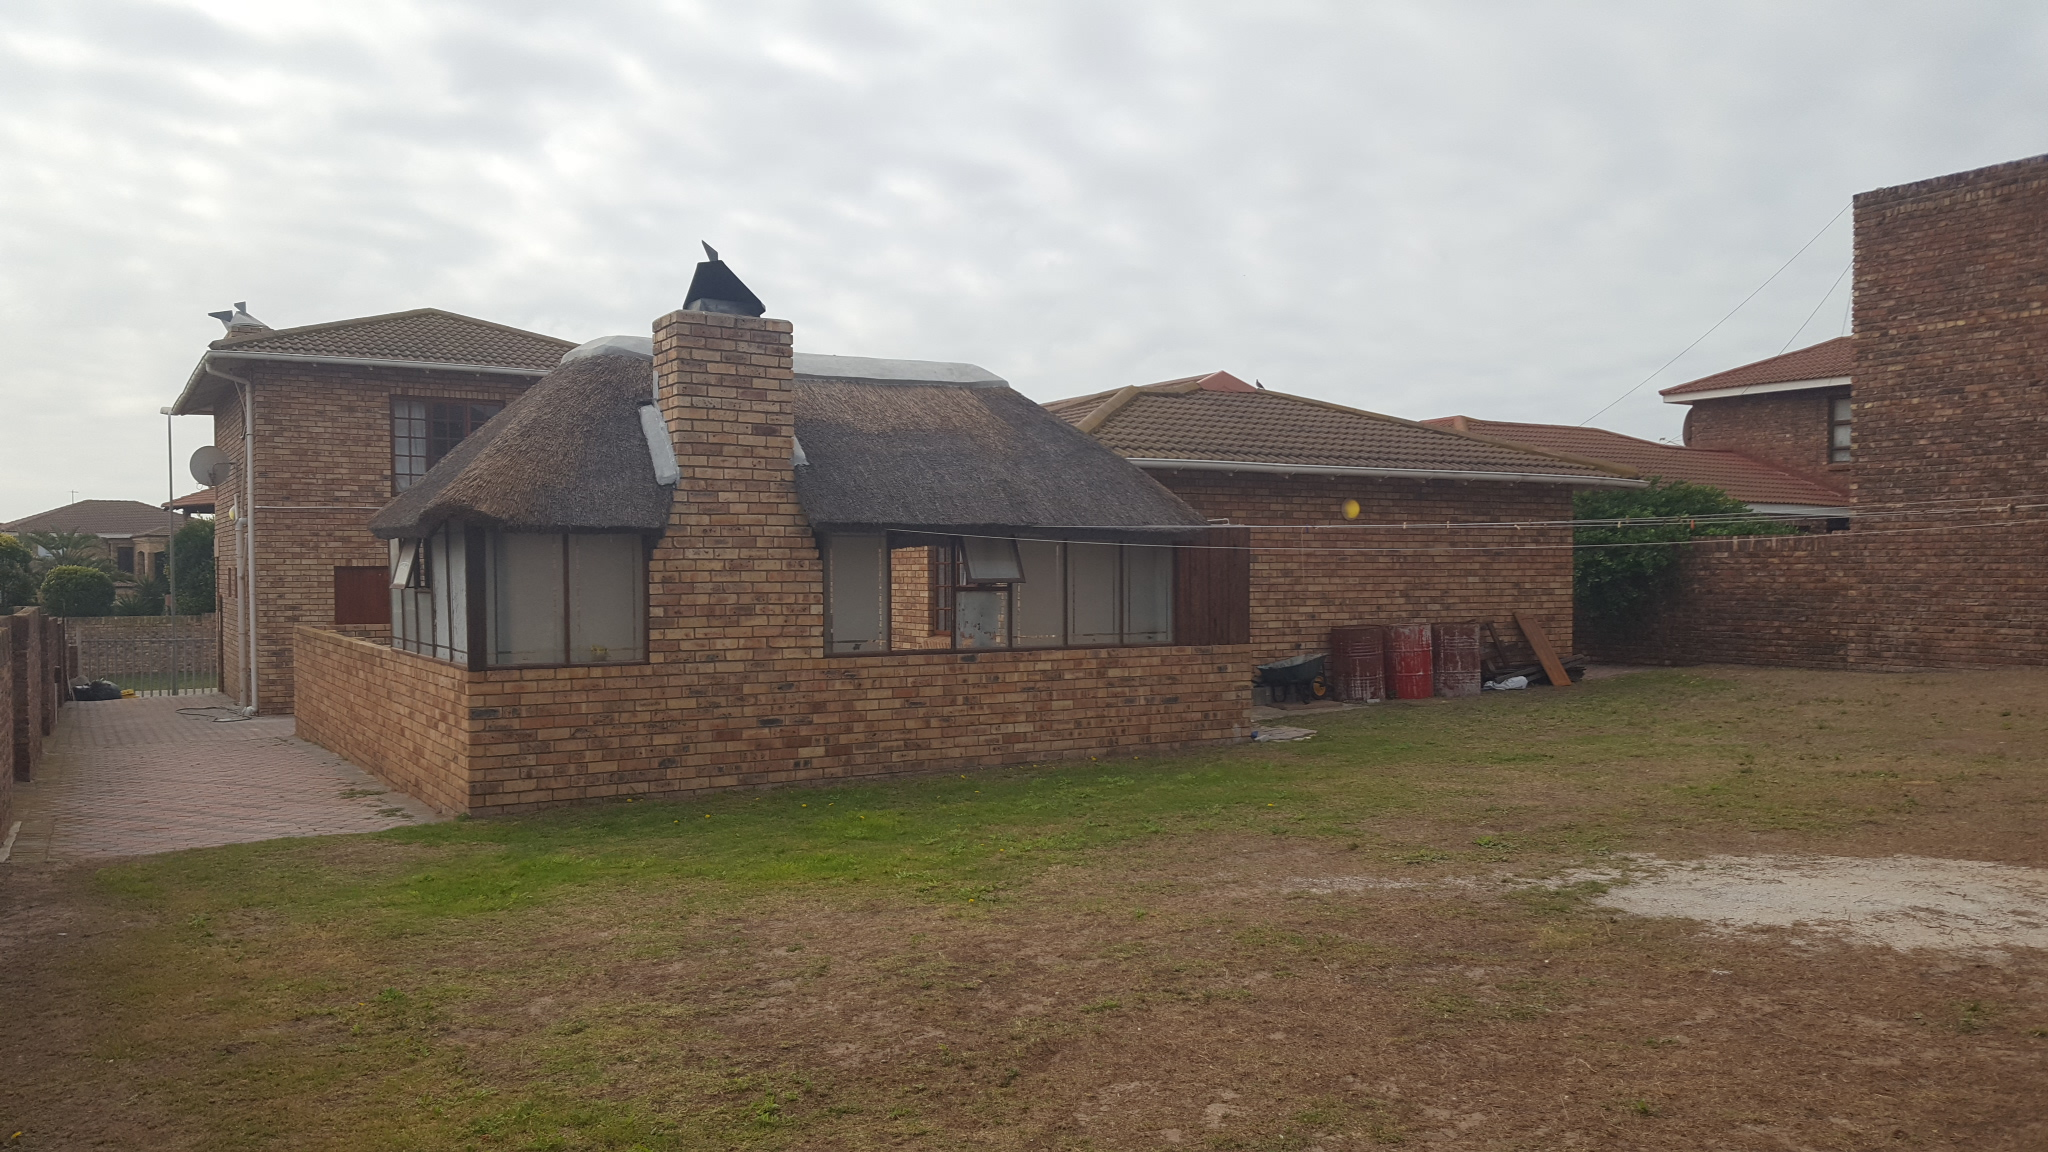 5 Bedroom House for sale in Bluewater Bay ENT0067493 : photo#2